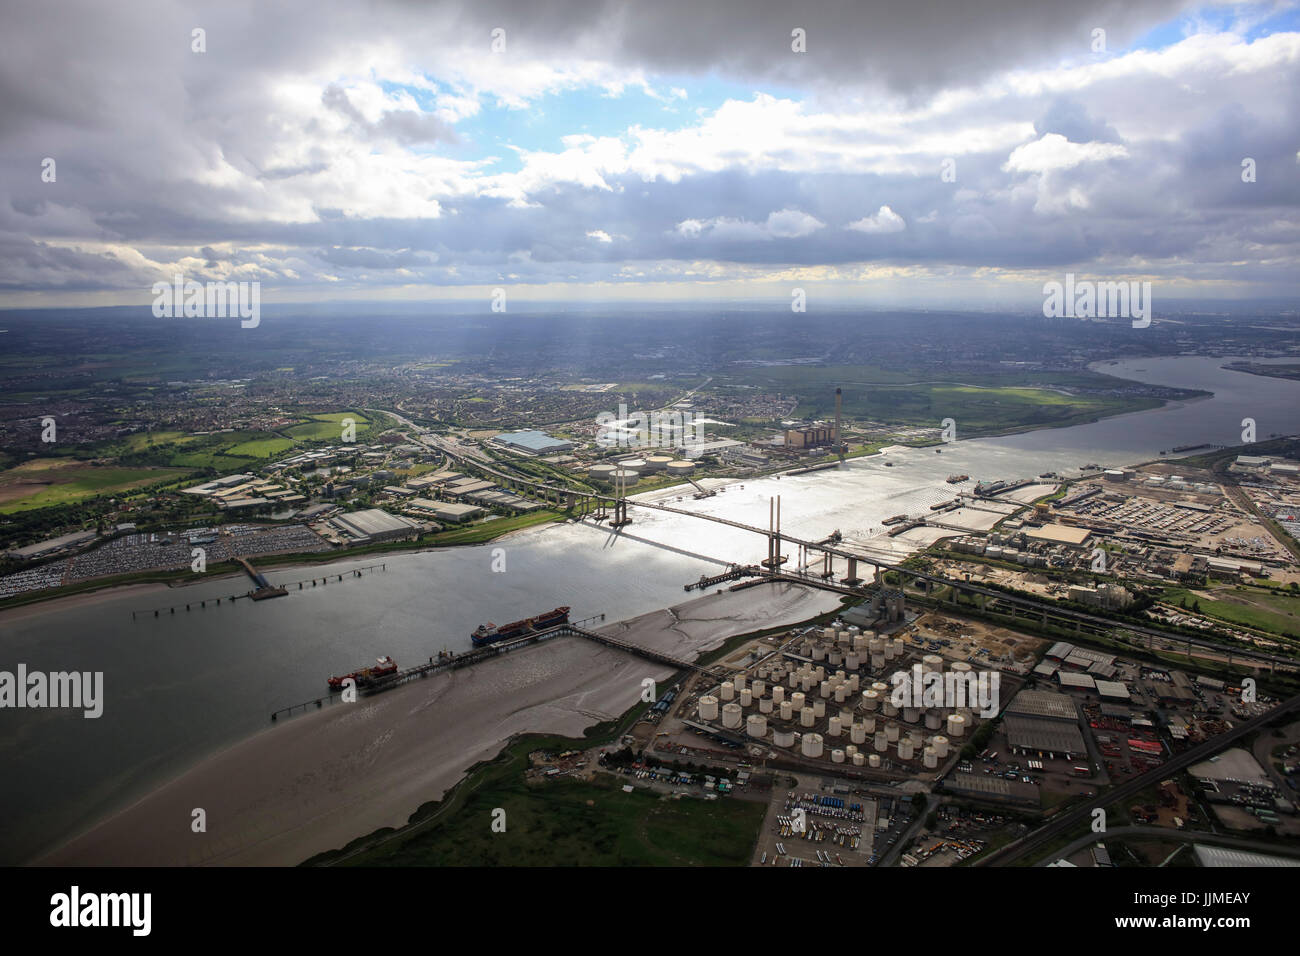 An aerial view showing the QE2 Bridge over the River Thames at Thurrock illuminated by sunlight - Stock Image